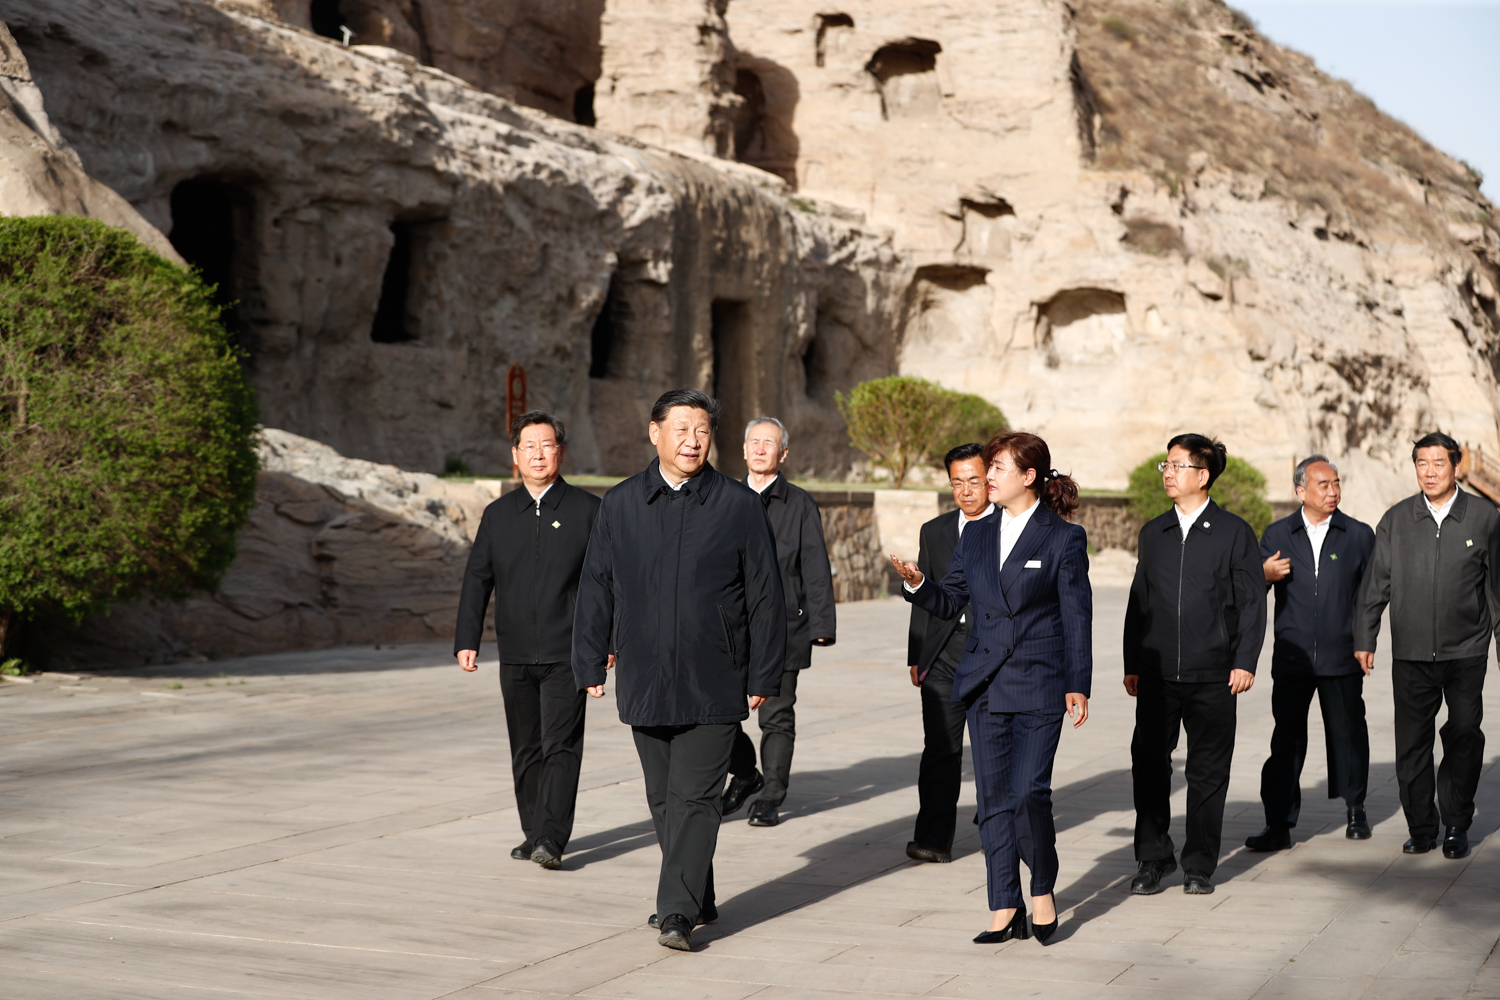 From the Mogao Grottoes to the Yungang Grottoes, Xi champions cultural relics protection